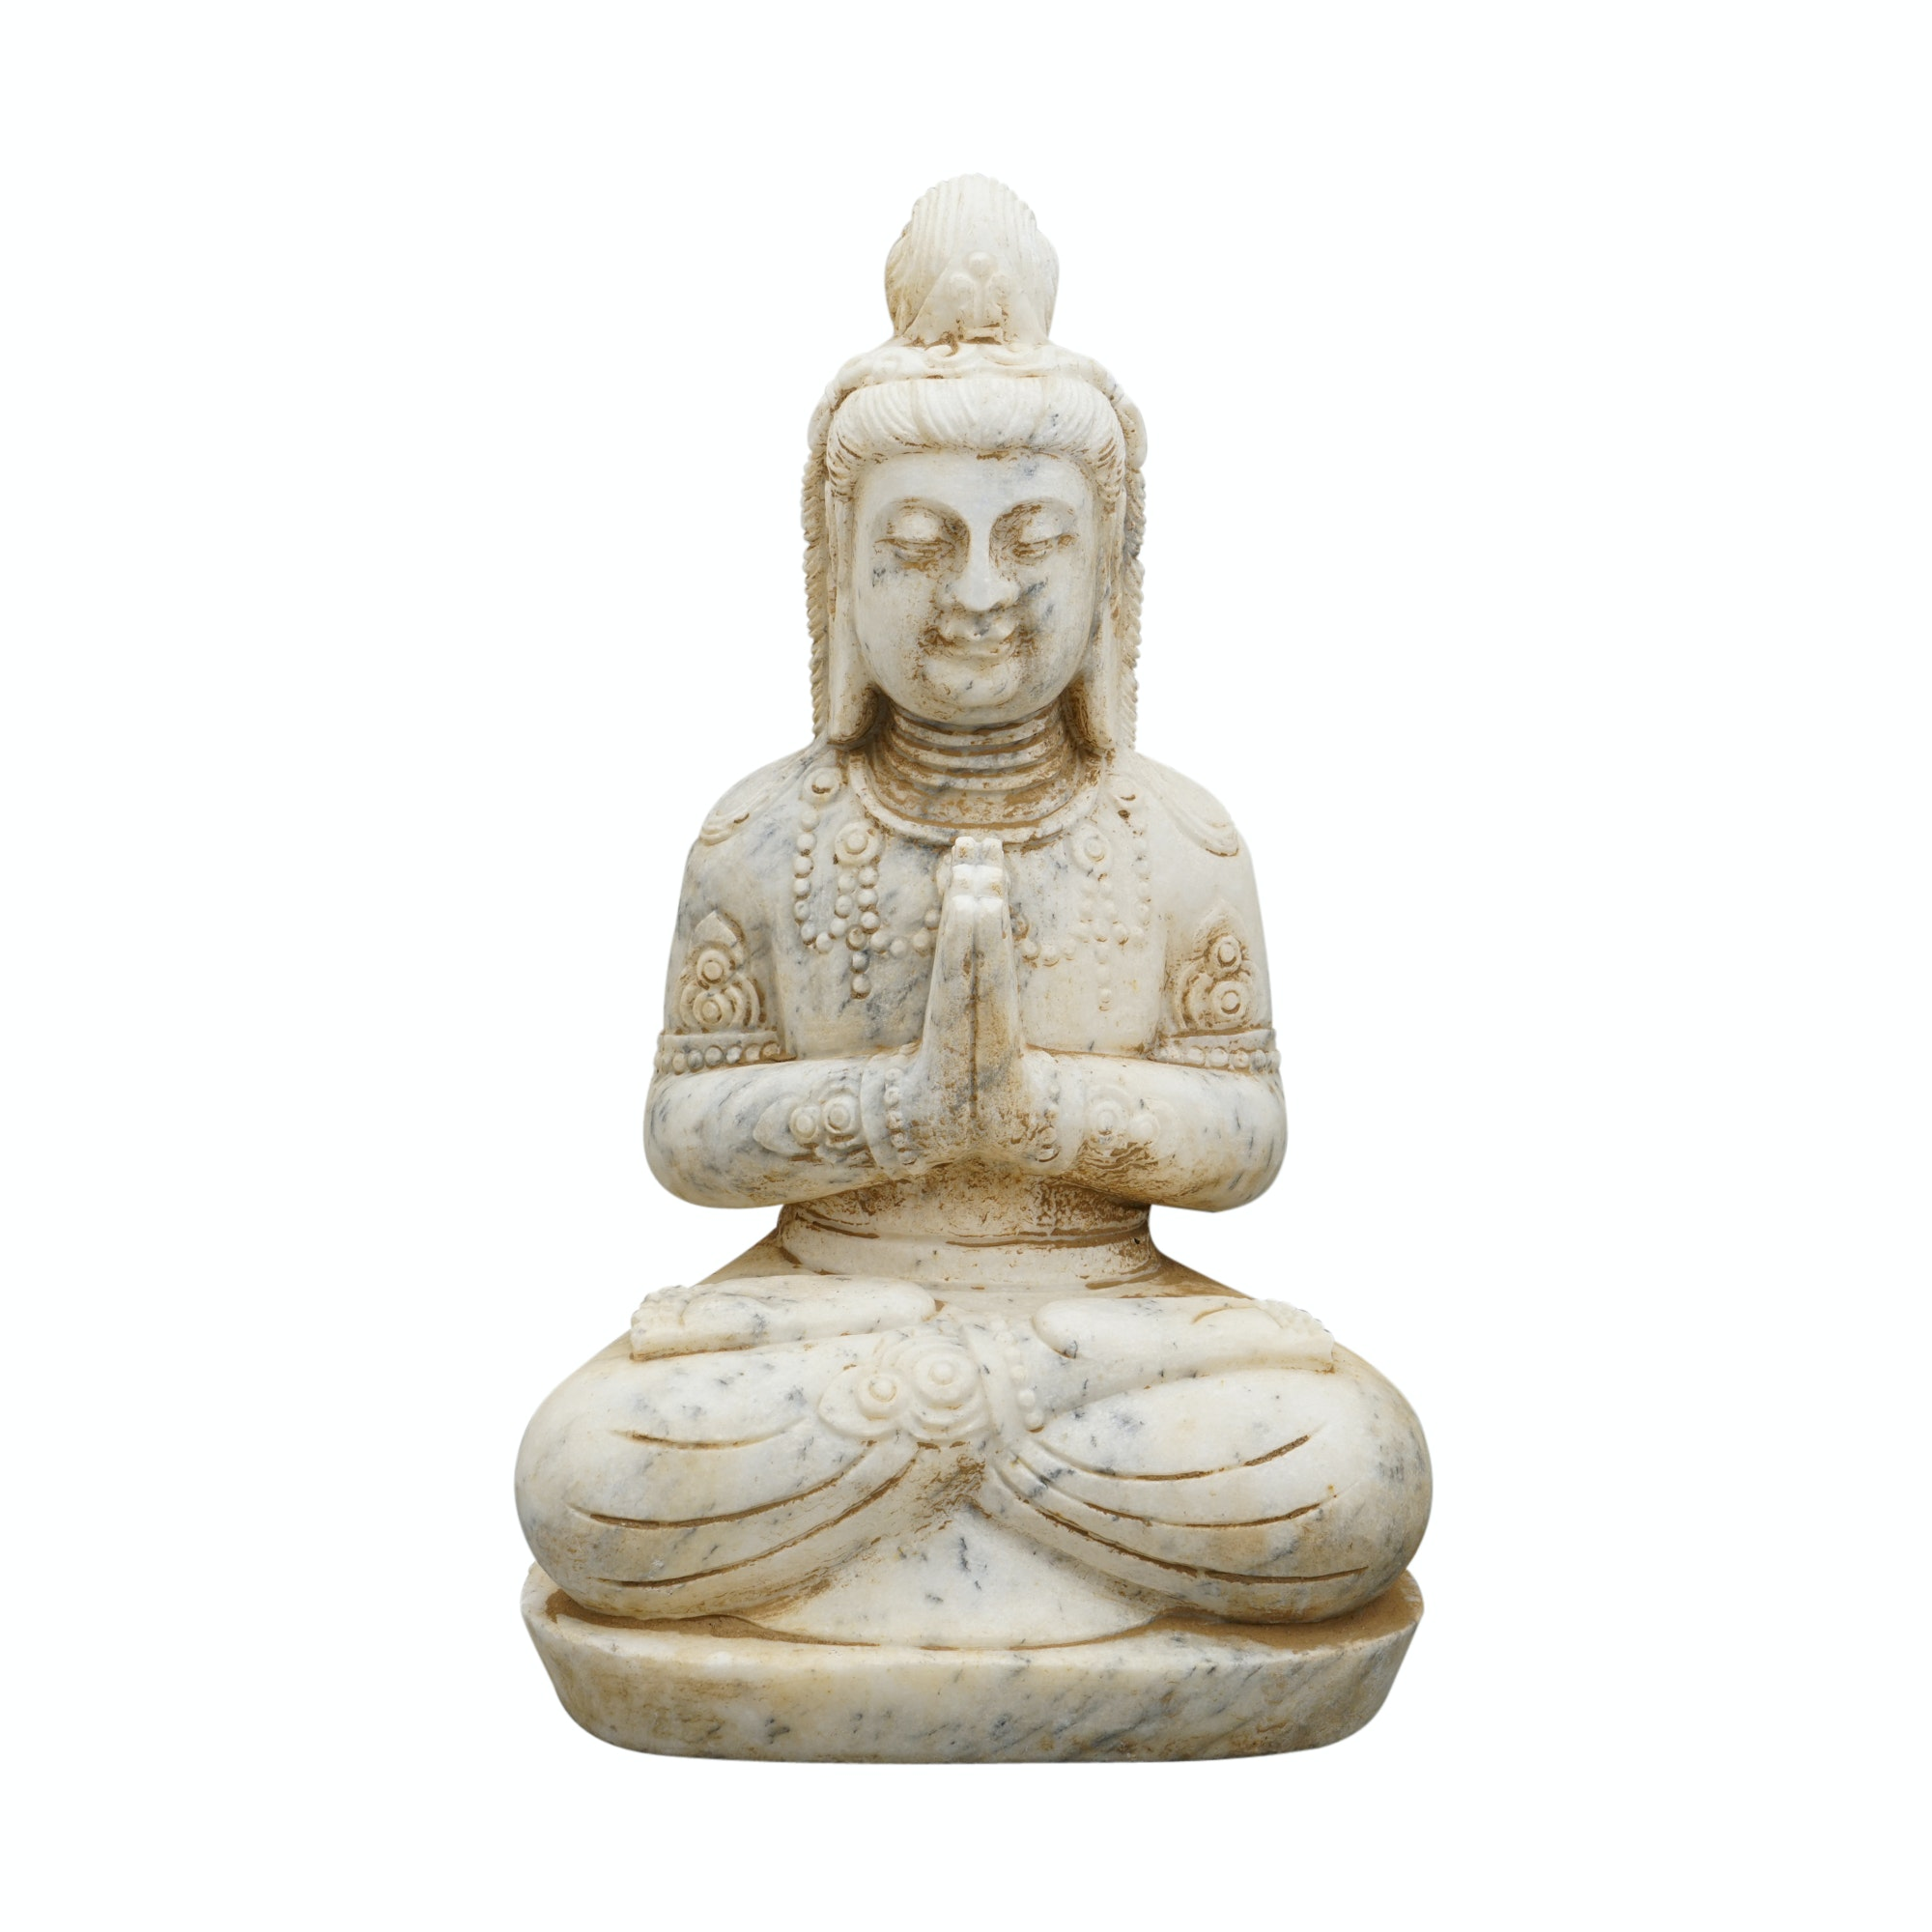 Carved Stone Buddha Sculpture